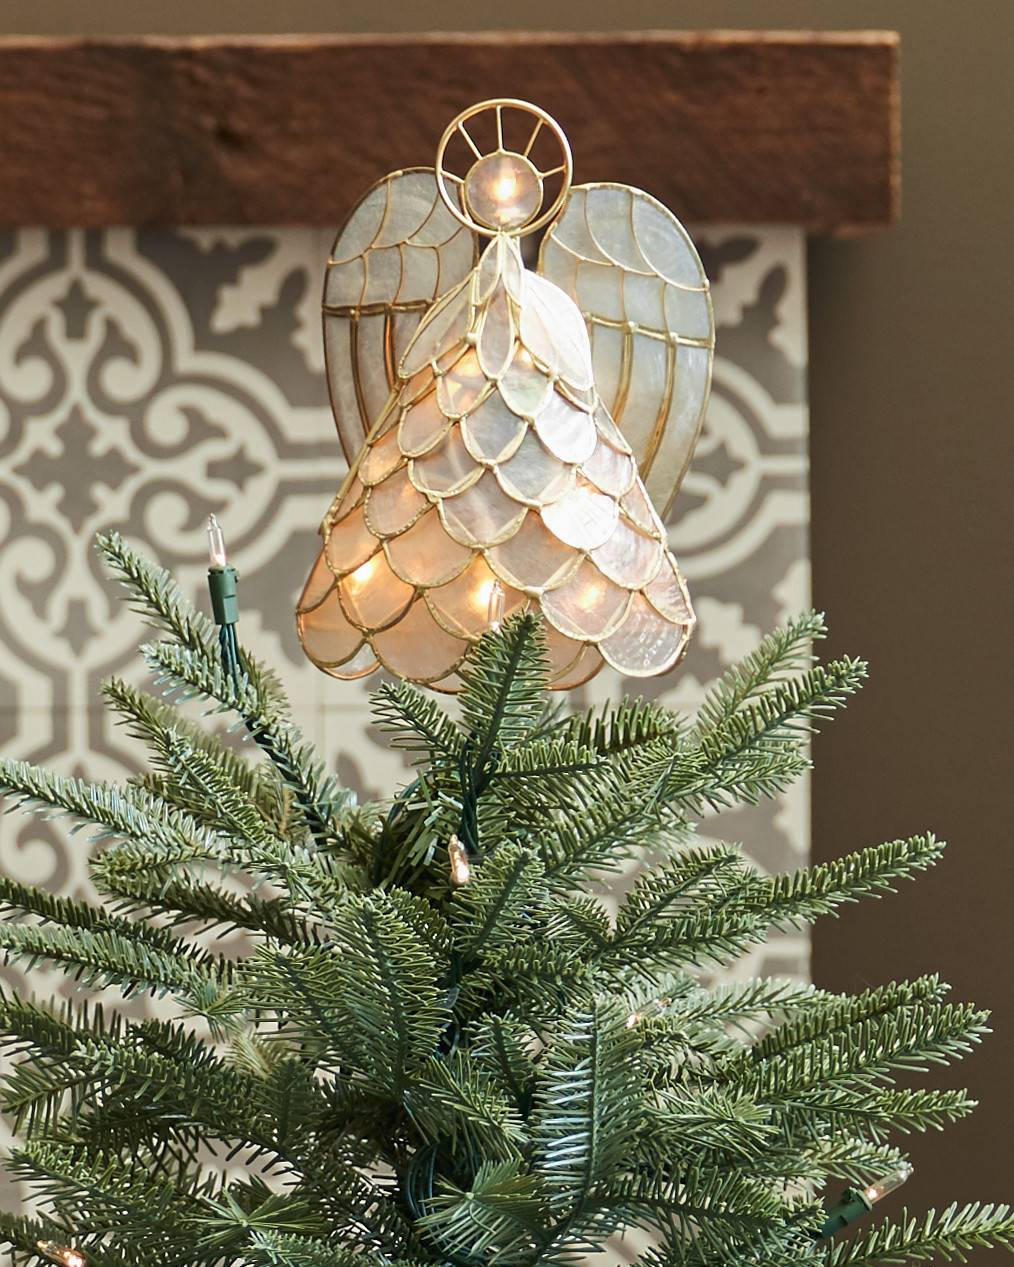 8 16 capiz angel lighted tree topper by balsam hill capiz angel lighted tree topper